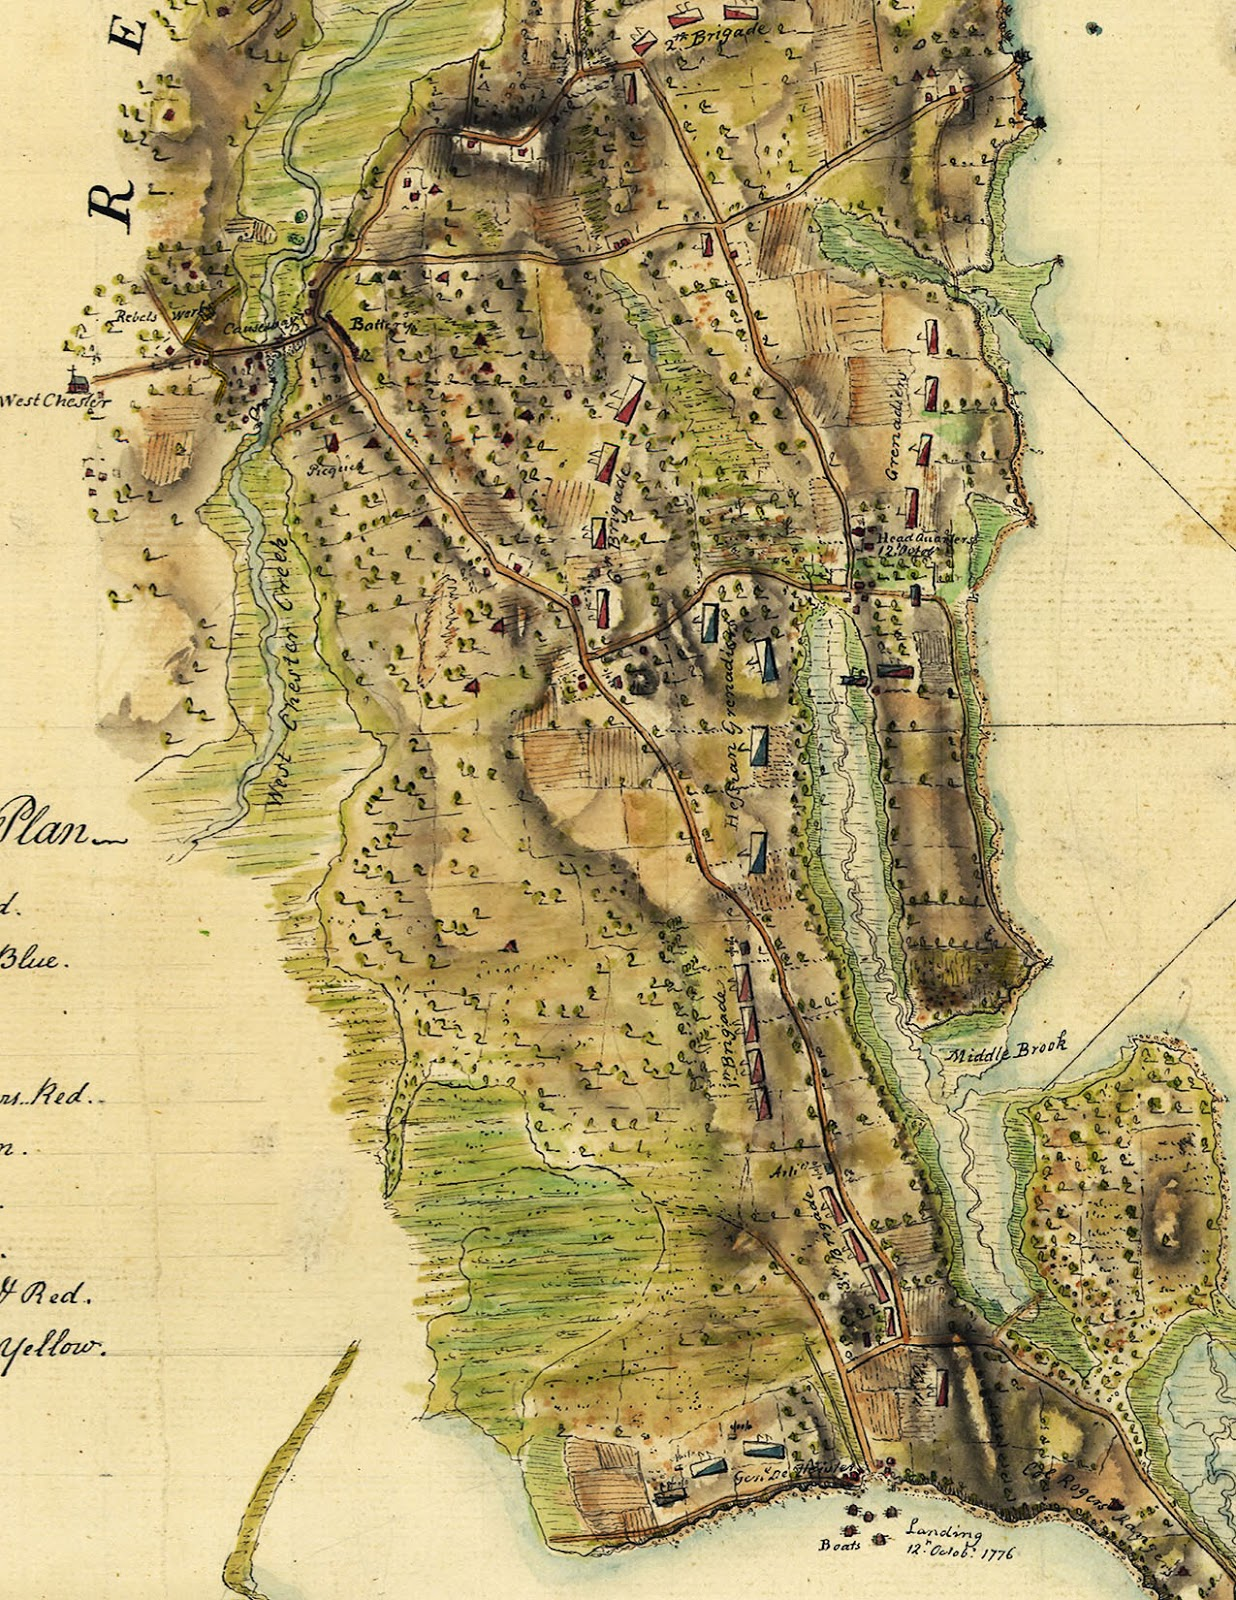 historic pelham account of the revolutionary war battle of westchester creek leading up to the battle of pelham on october 18 1776